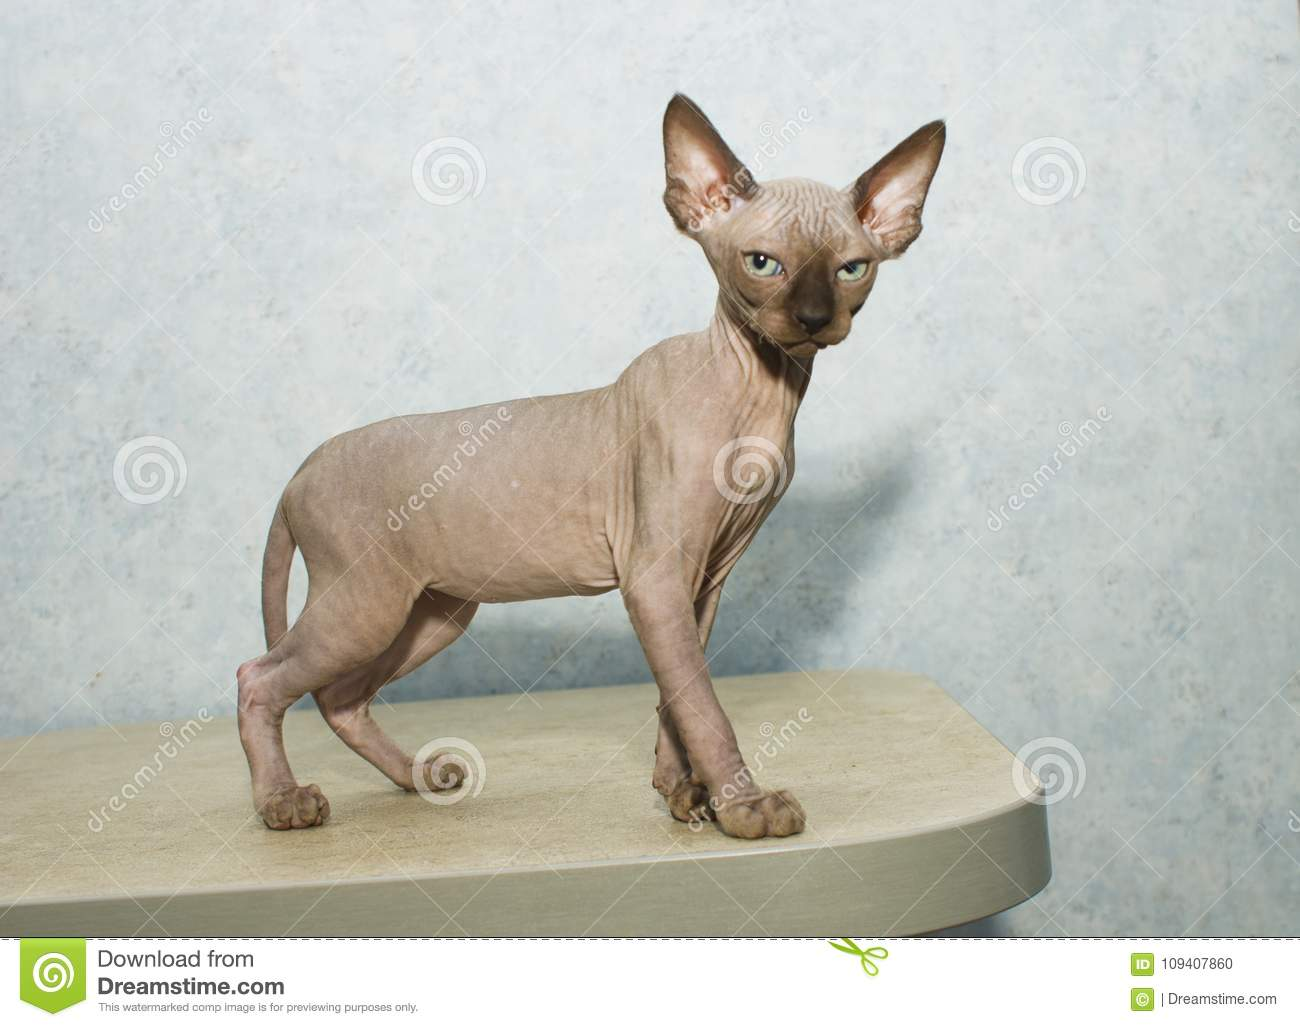 Sphynx cat poses for a photo shoot